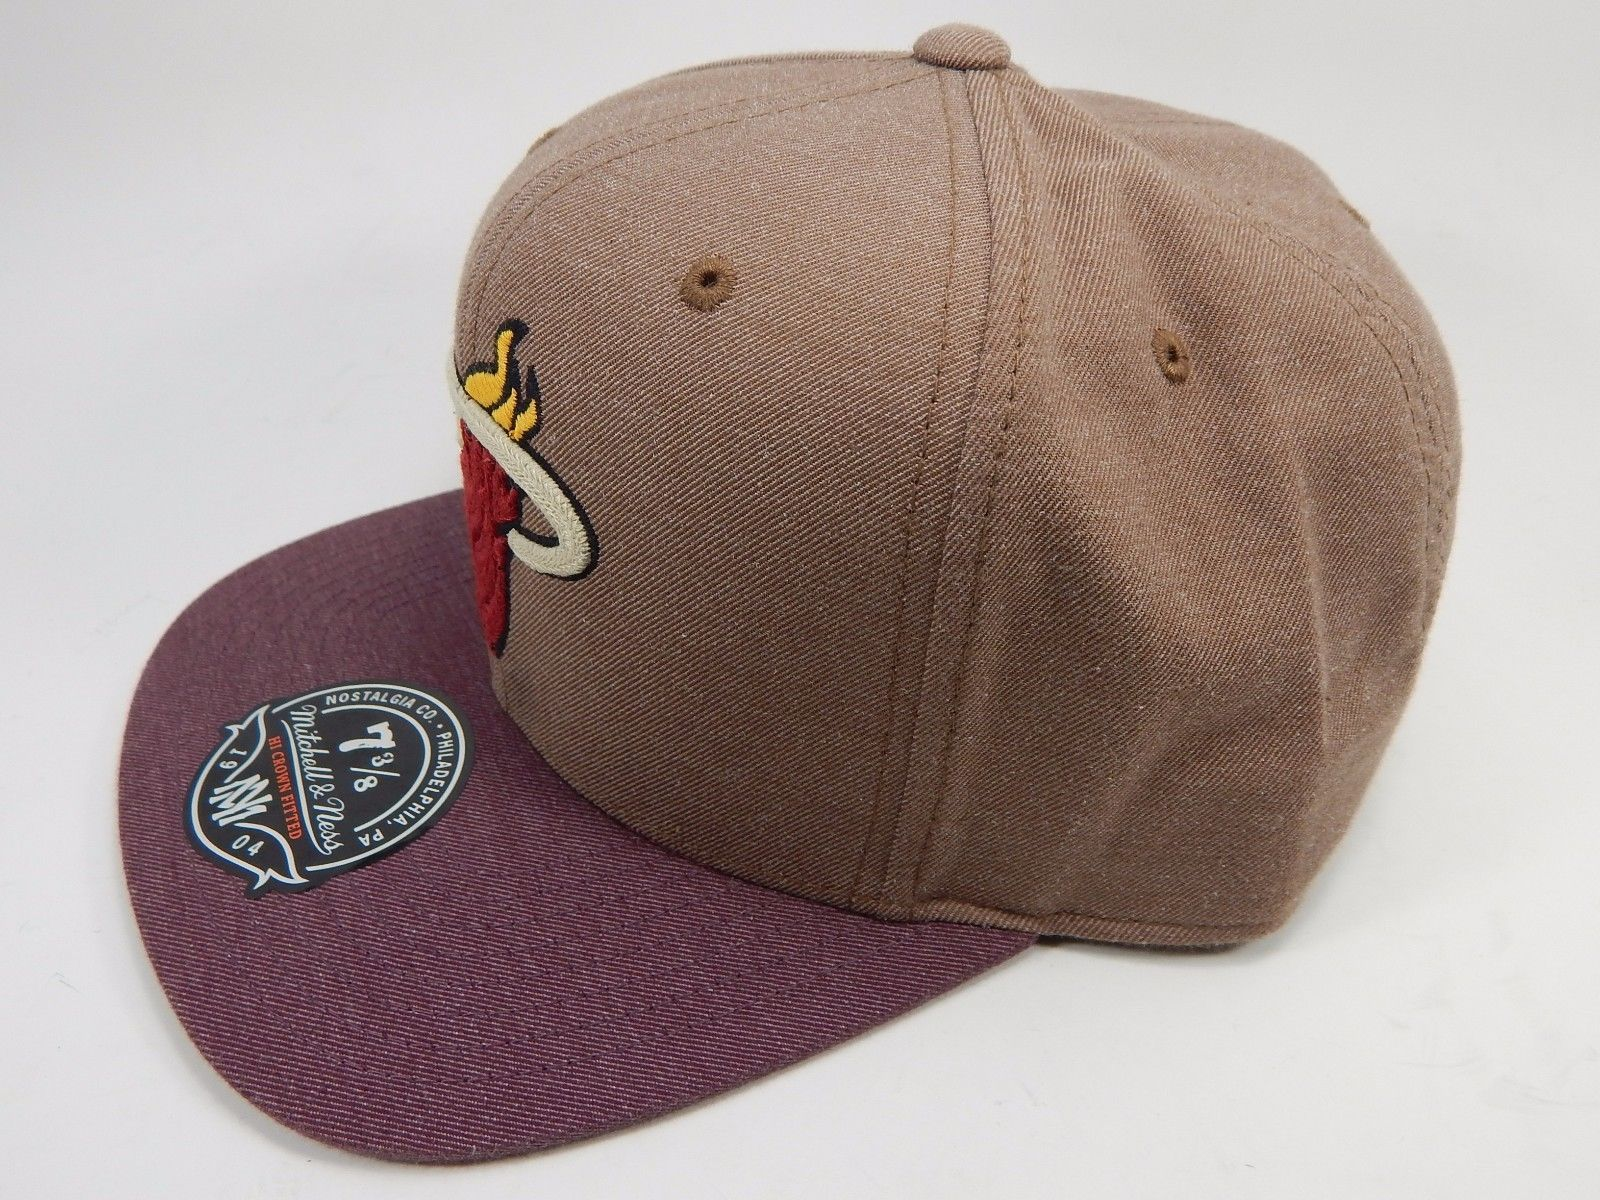 Miami Heat Mitchell & Ness Size 7 3/8 Crown Fitted NBA Cap Hat Purple Brown